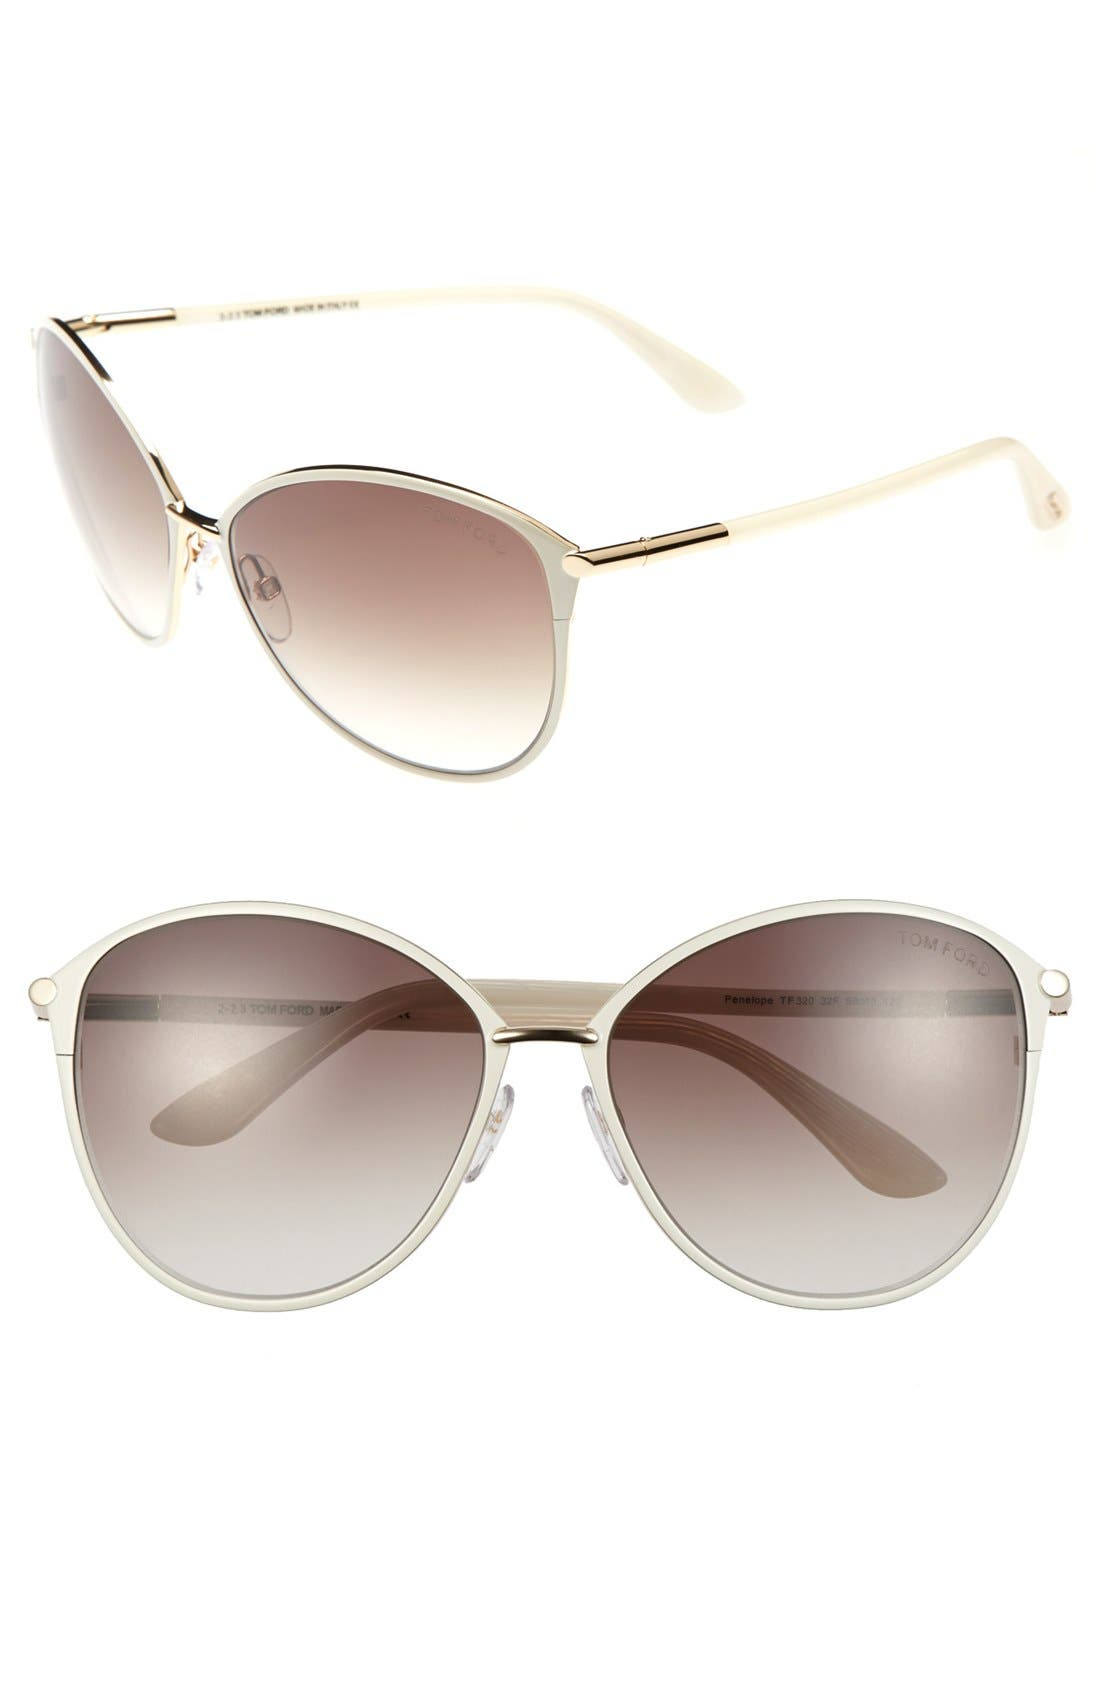 Tom Ford Penelope 5m Gradient Cat Eye Sunglasses - Shiny Rose Gold/ Ivory